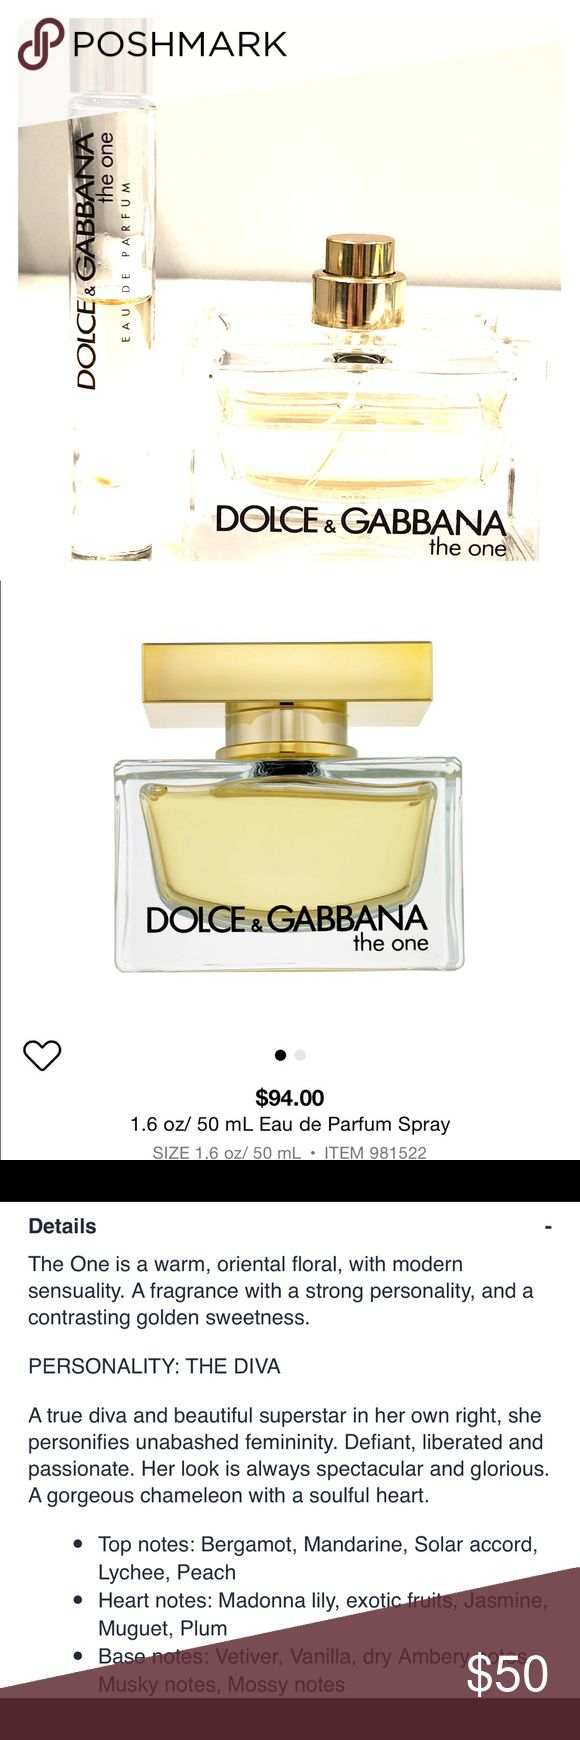 Dolce and Gabbana The One Eau de Parfum bundle More than half of 1.6oz bottle of The One by Dolce and Gabbana PLUS half vial of rollerball. 100% genuine. Perfume bottle is missing the cap.  This is a gorgeous and classy fragrance and priced to sell!! Reg price is $94 + $29. Dolce & Gabbana Other